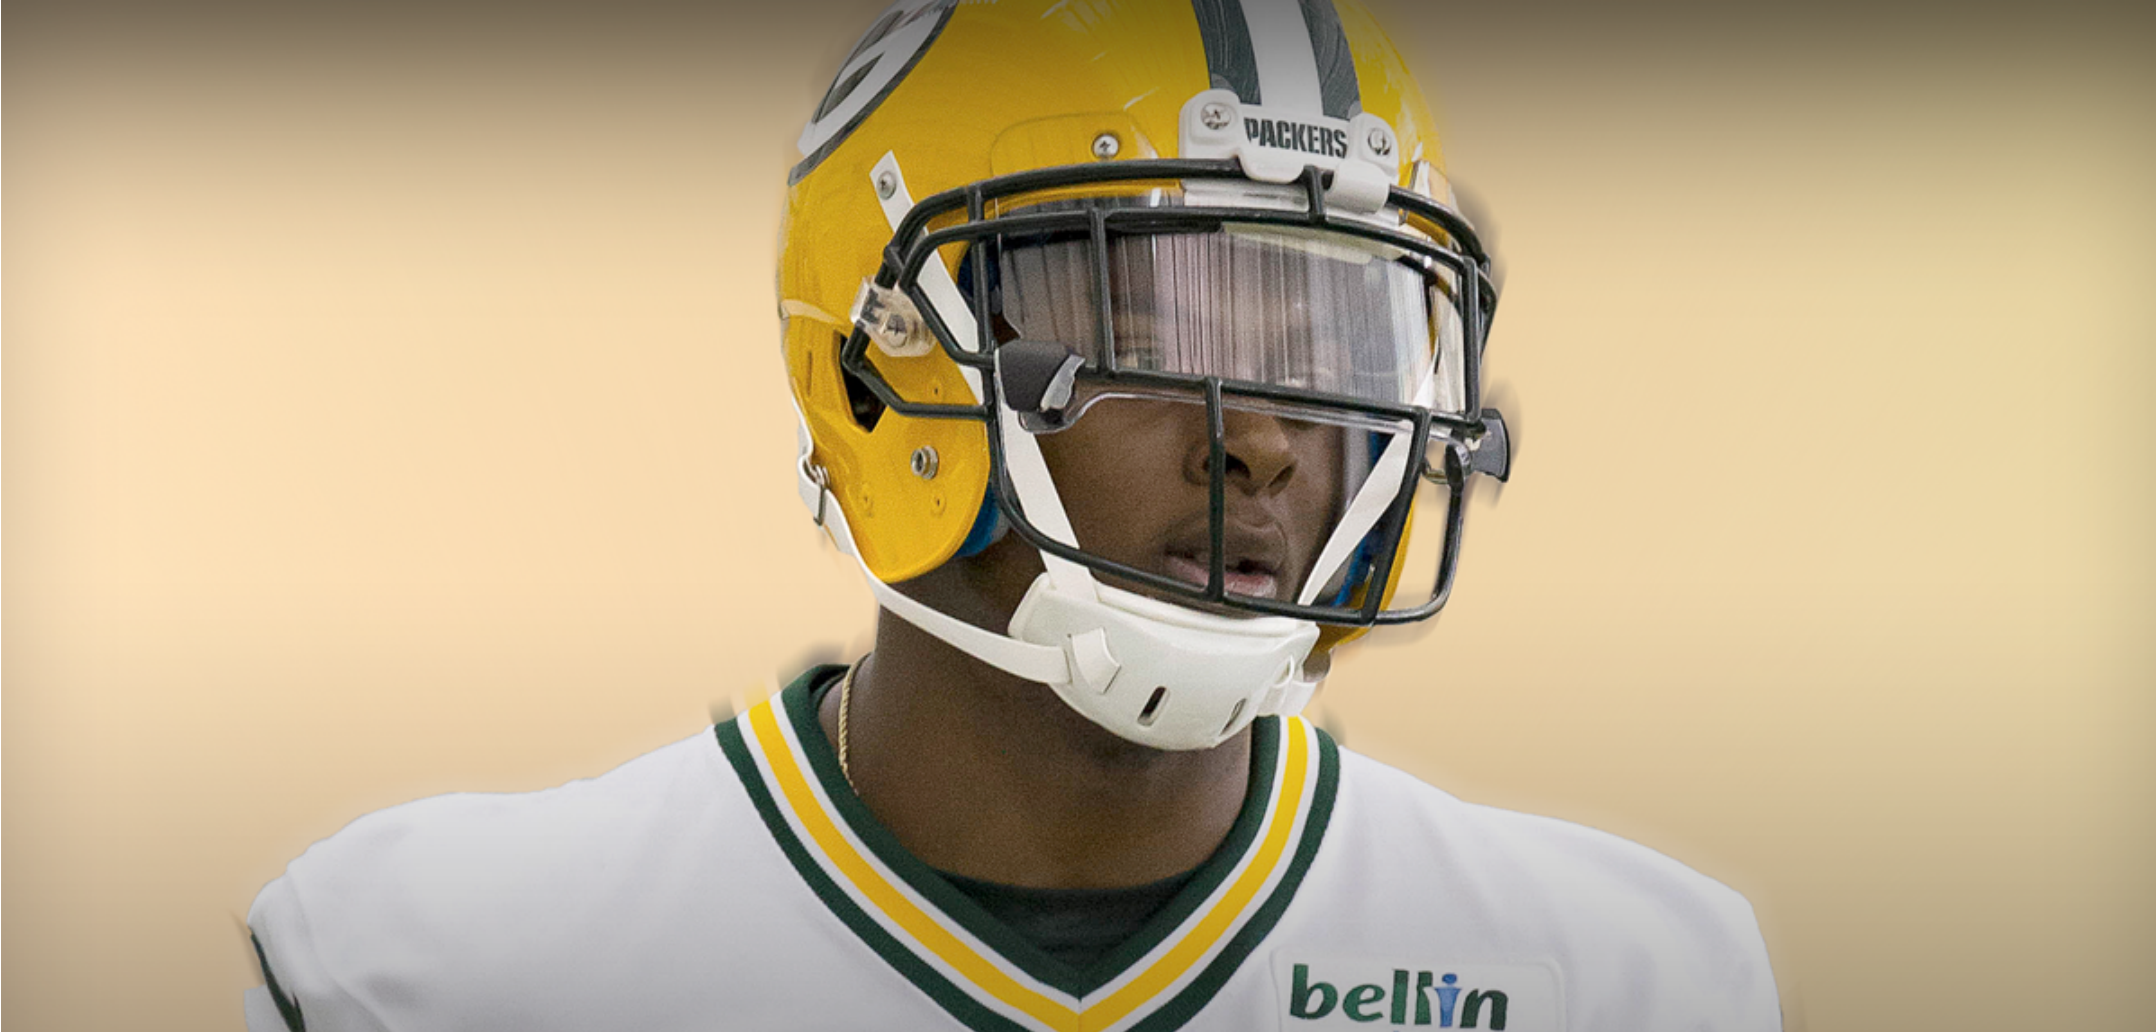 Courtesy of USA Today: Adams, a rookie, could turn into the next great Packers receiver.